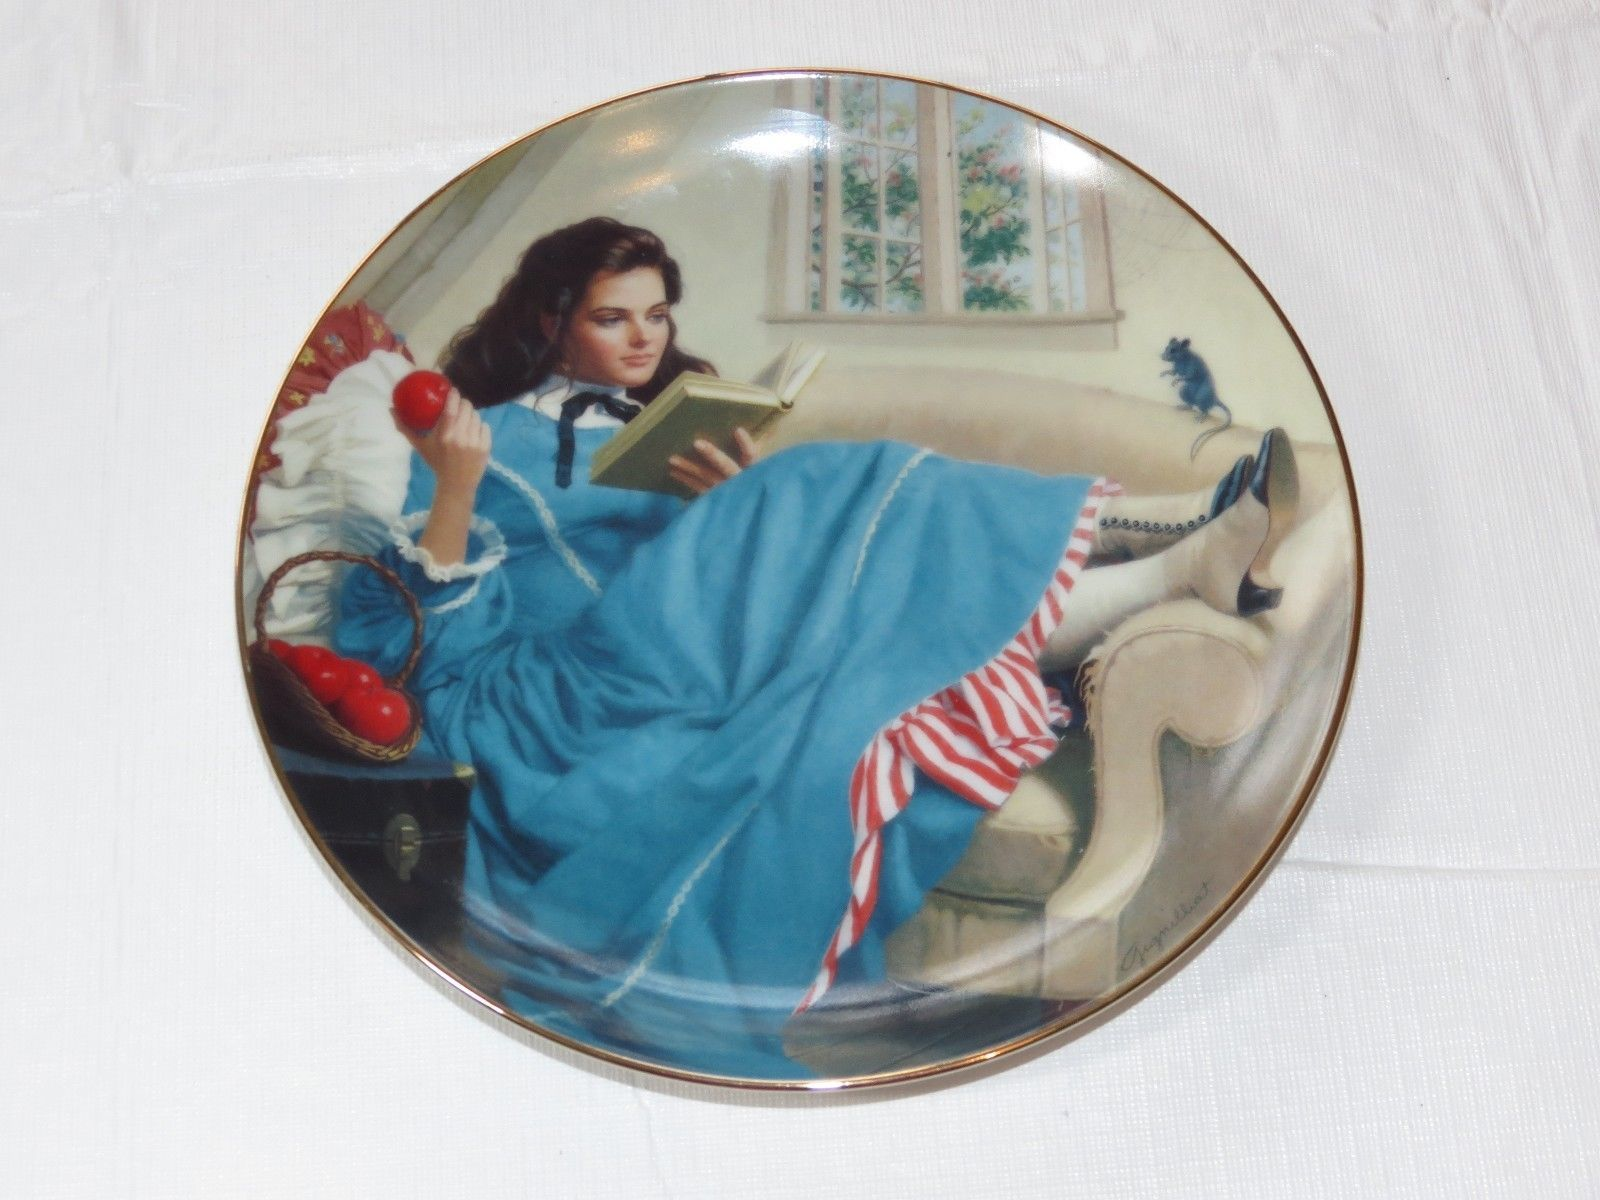 Jo by Elaine Gignilliat Little Women Danbury Mint Collector Plate ~